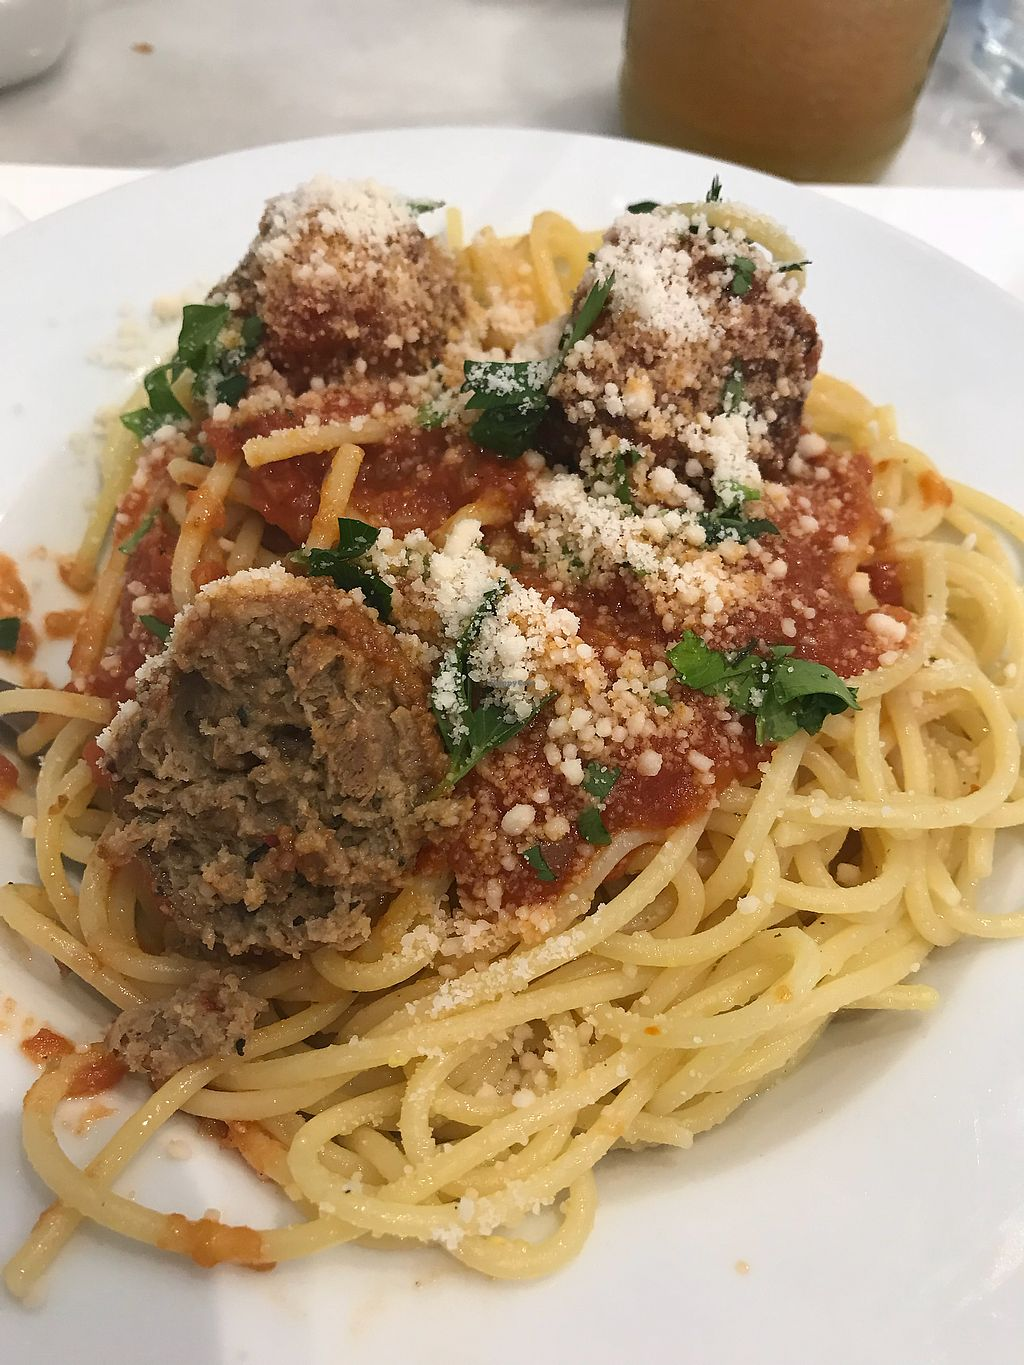 """Photo of Kafenion  by <a href=""""/members/profile/Inga75"""">Inga75</a> <br/>Awesome, flavoursome spaghetti with meatless balls n vegan parmesan <br/> March 29, 2018  - <a href='/contact/abuse/image/102490/377551'>Report</a>"""